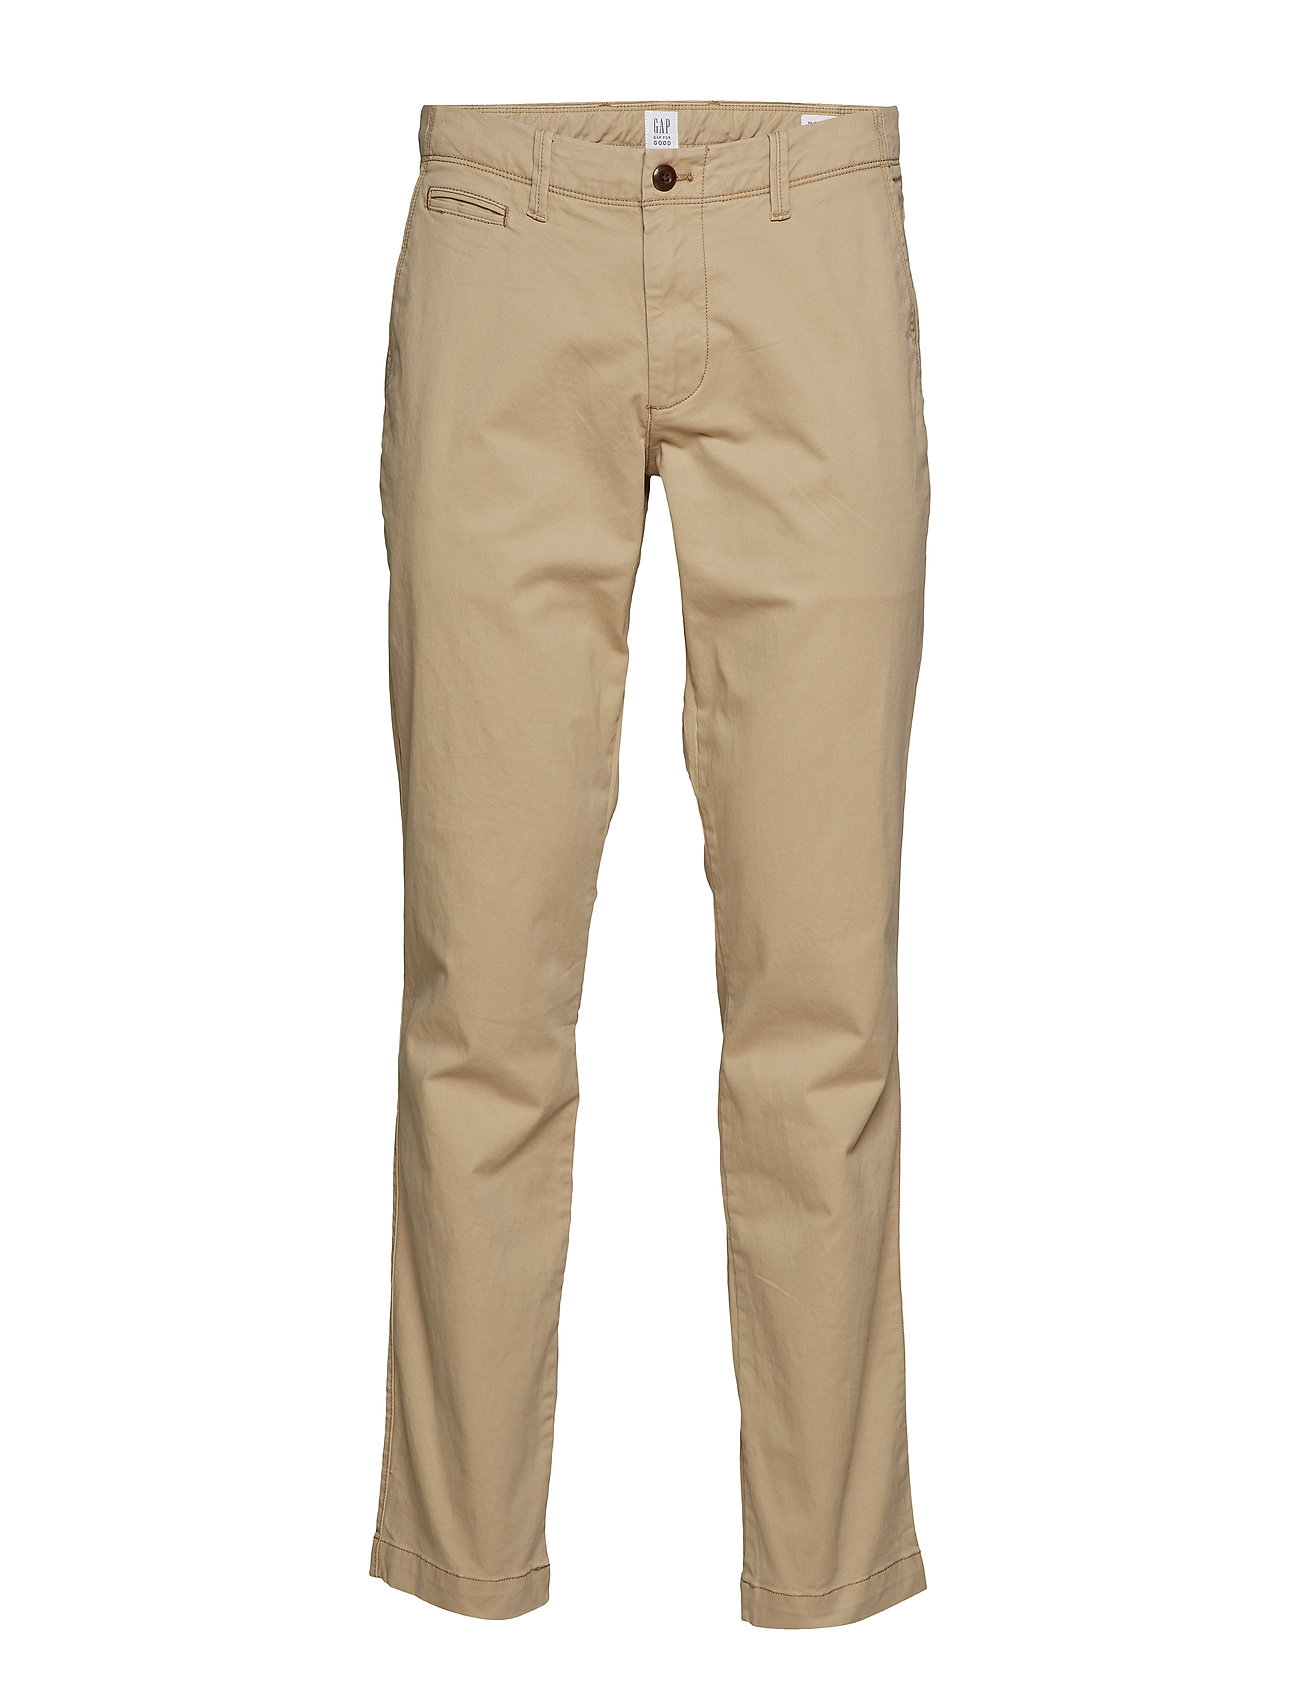 Khakis Vintage Fit KhakiGap Slim Gapflexiconic In With IYmb76gyvf